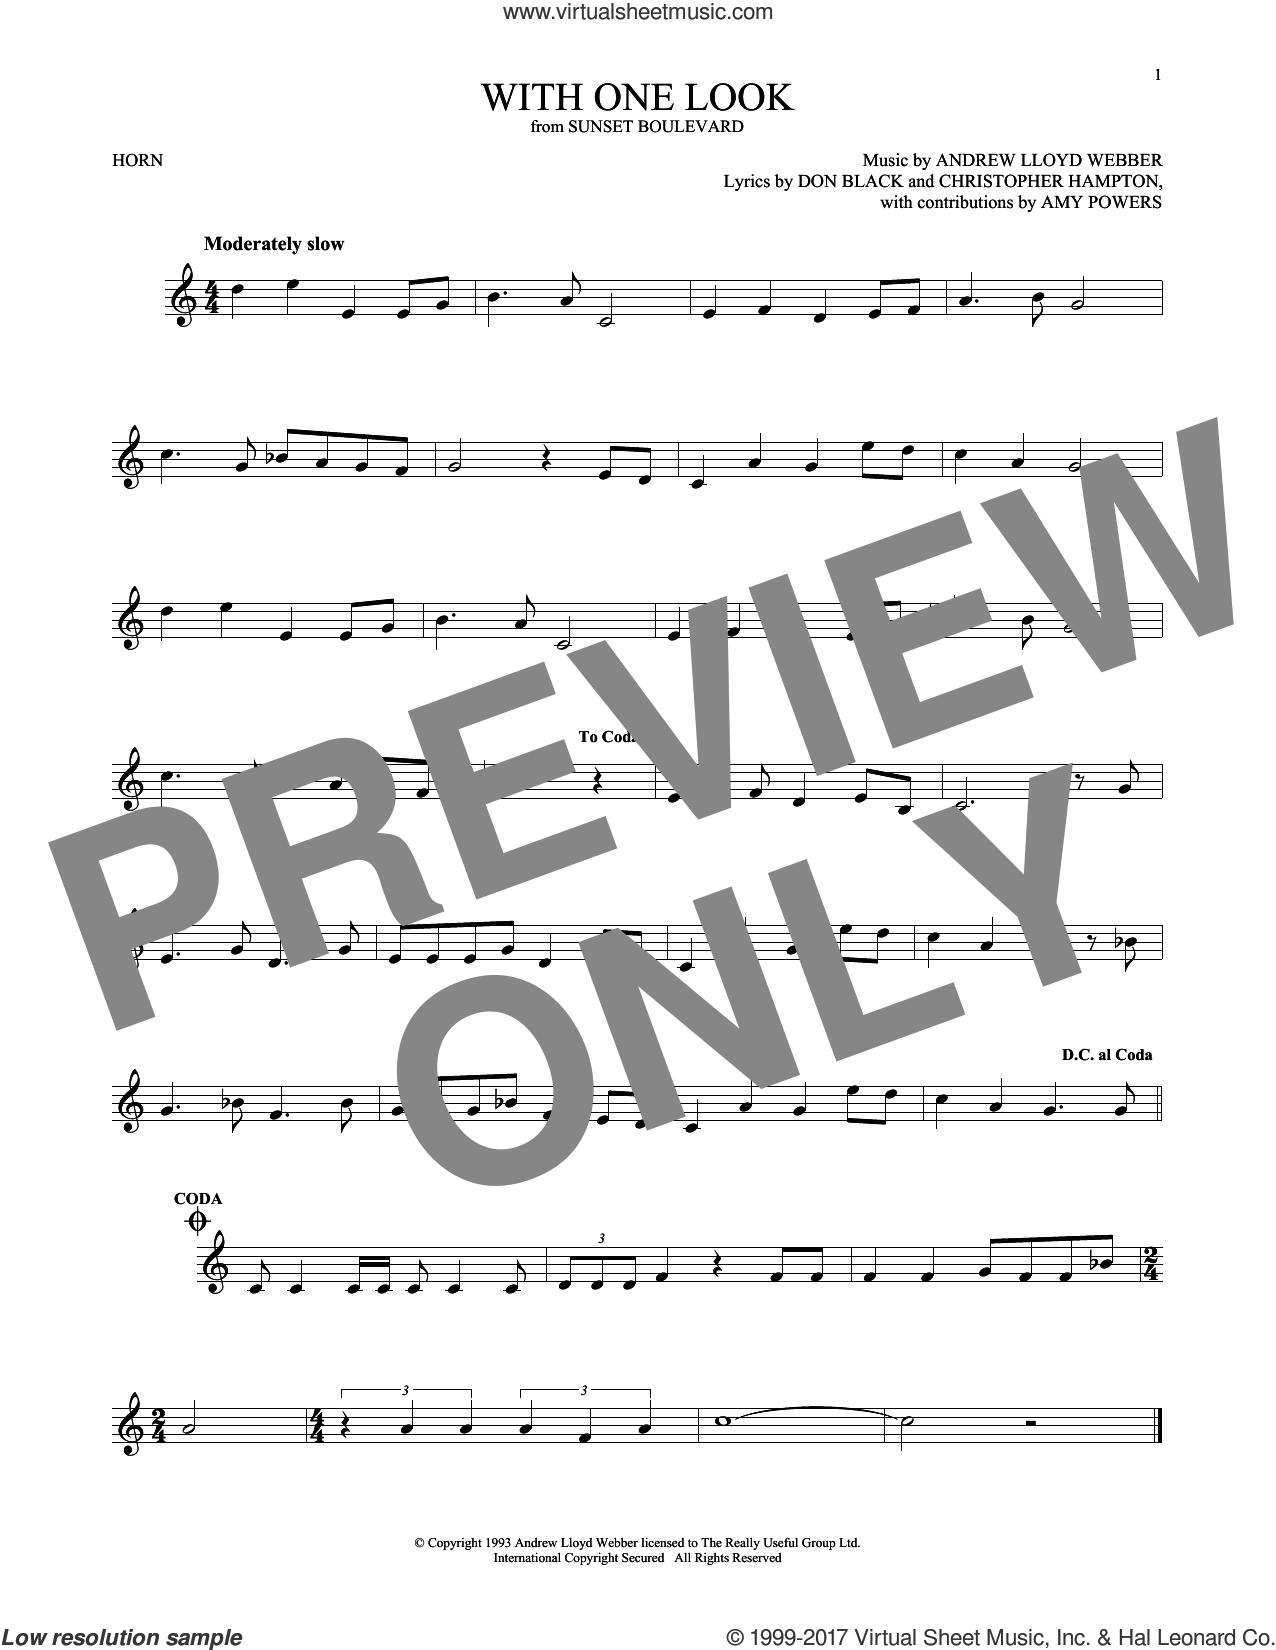 With One Look sheet music for horn solo by Andrew Lloyd Webber, Christopher Hampton and Don Black, intermediate skill level